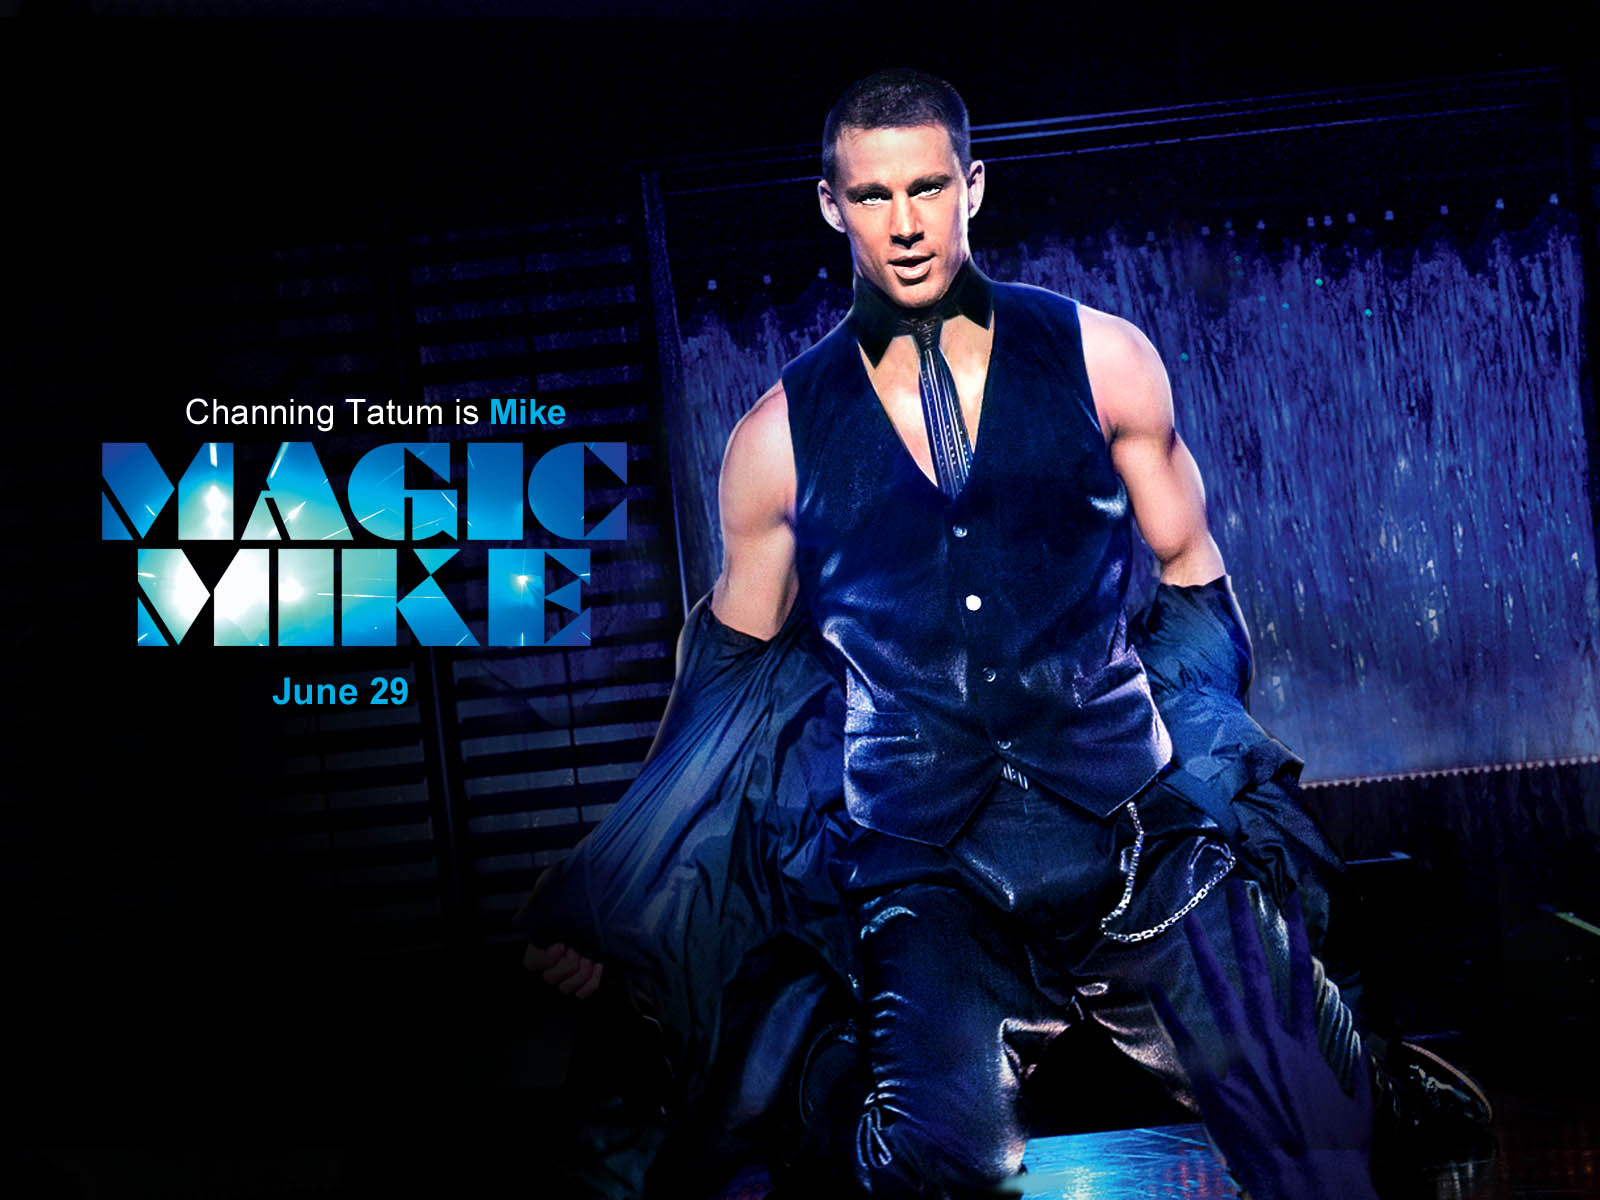 Channing Tatum workout and diet